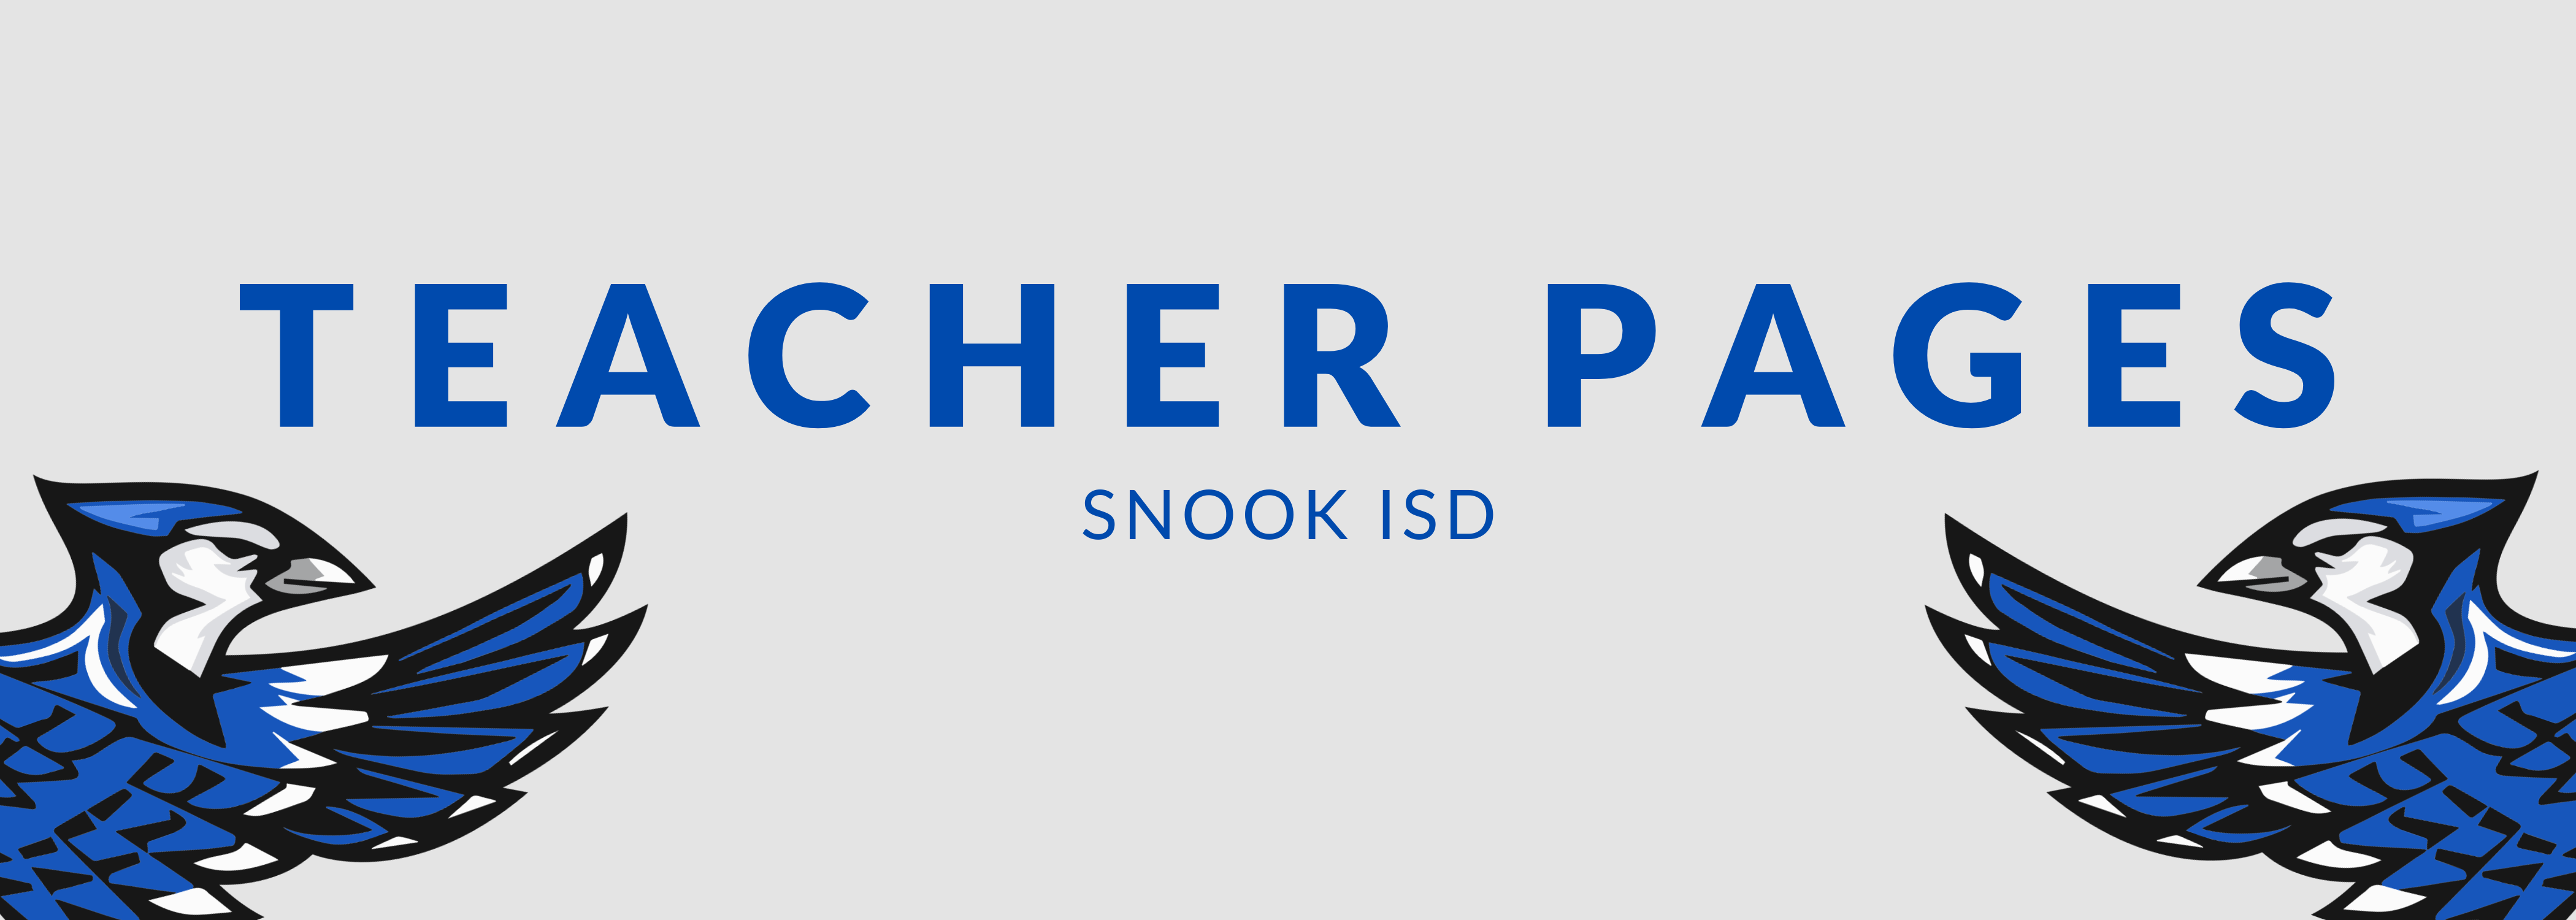 Teacher Pages Snook ISD